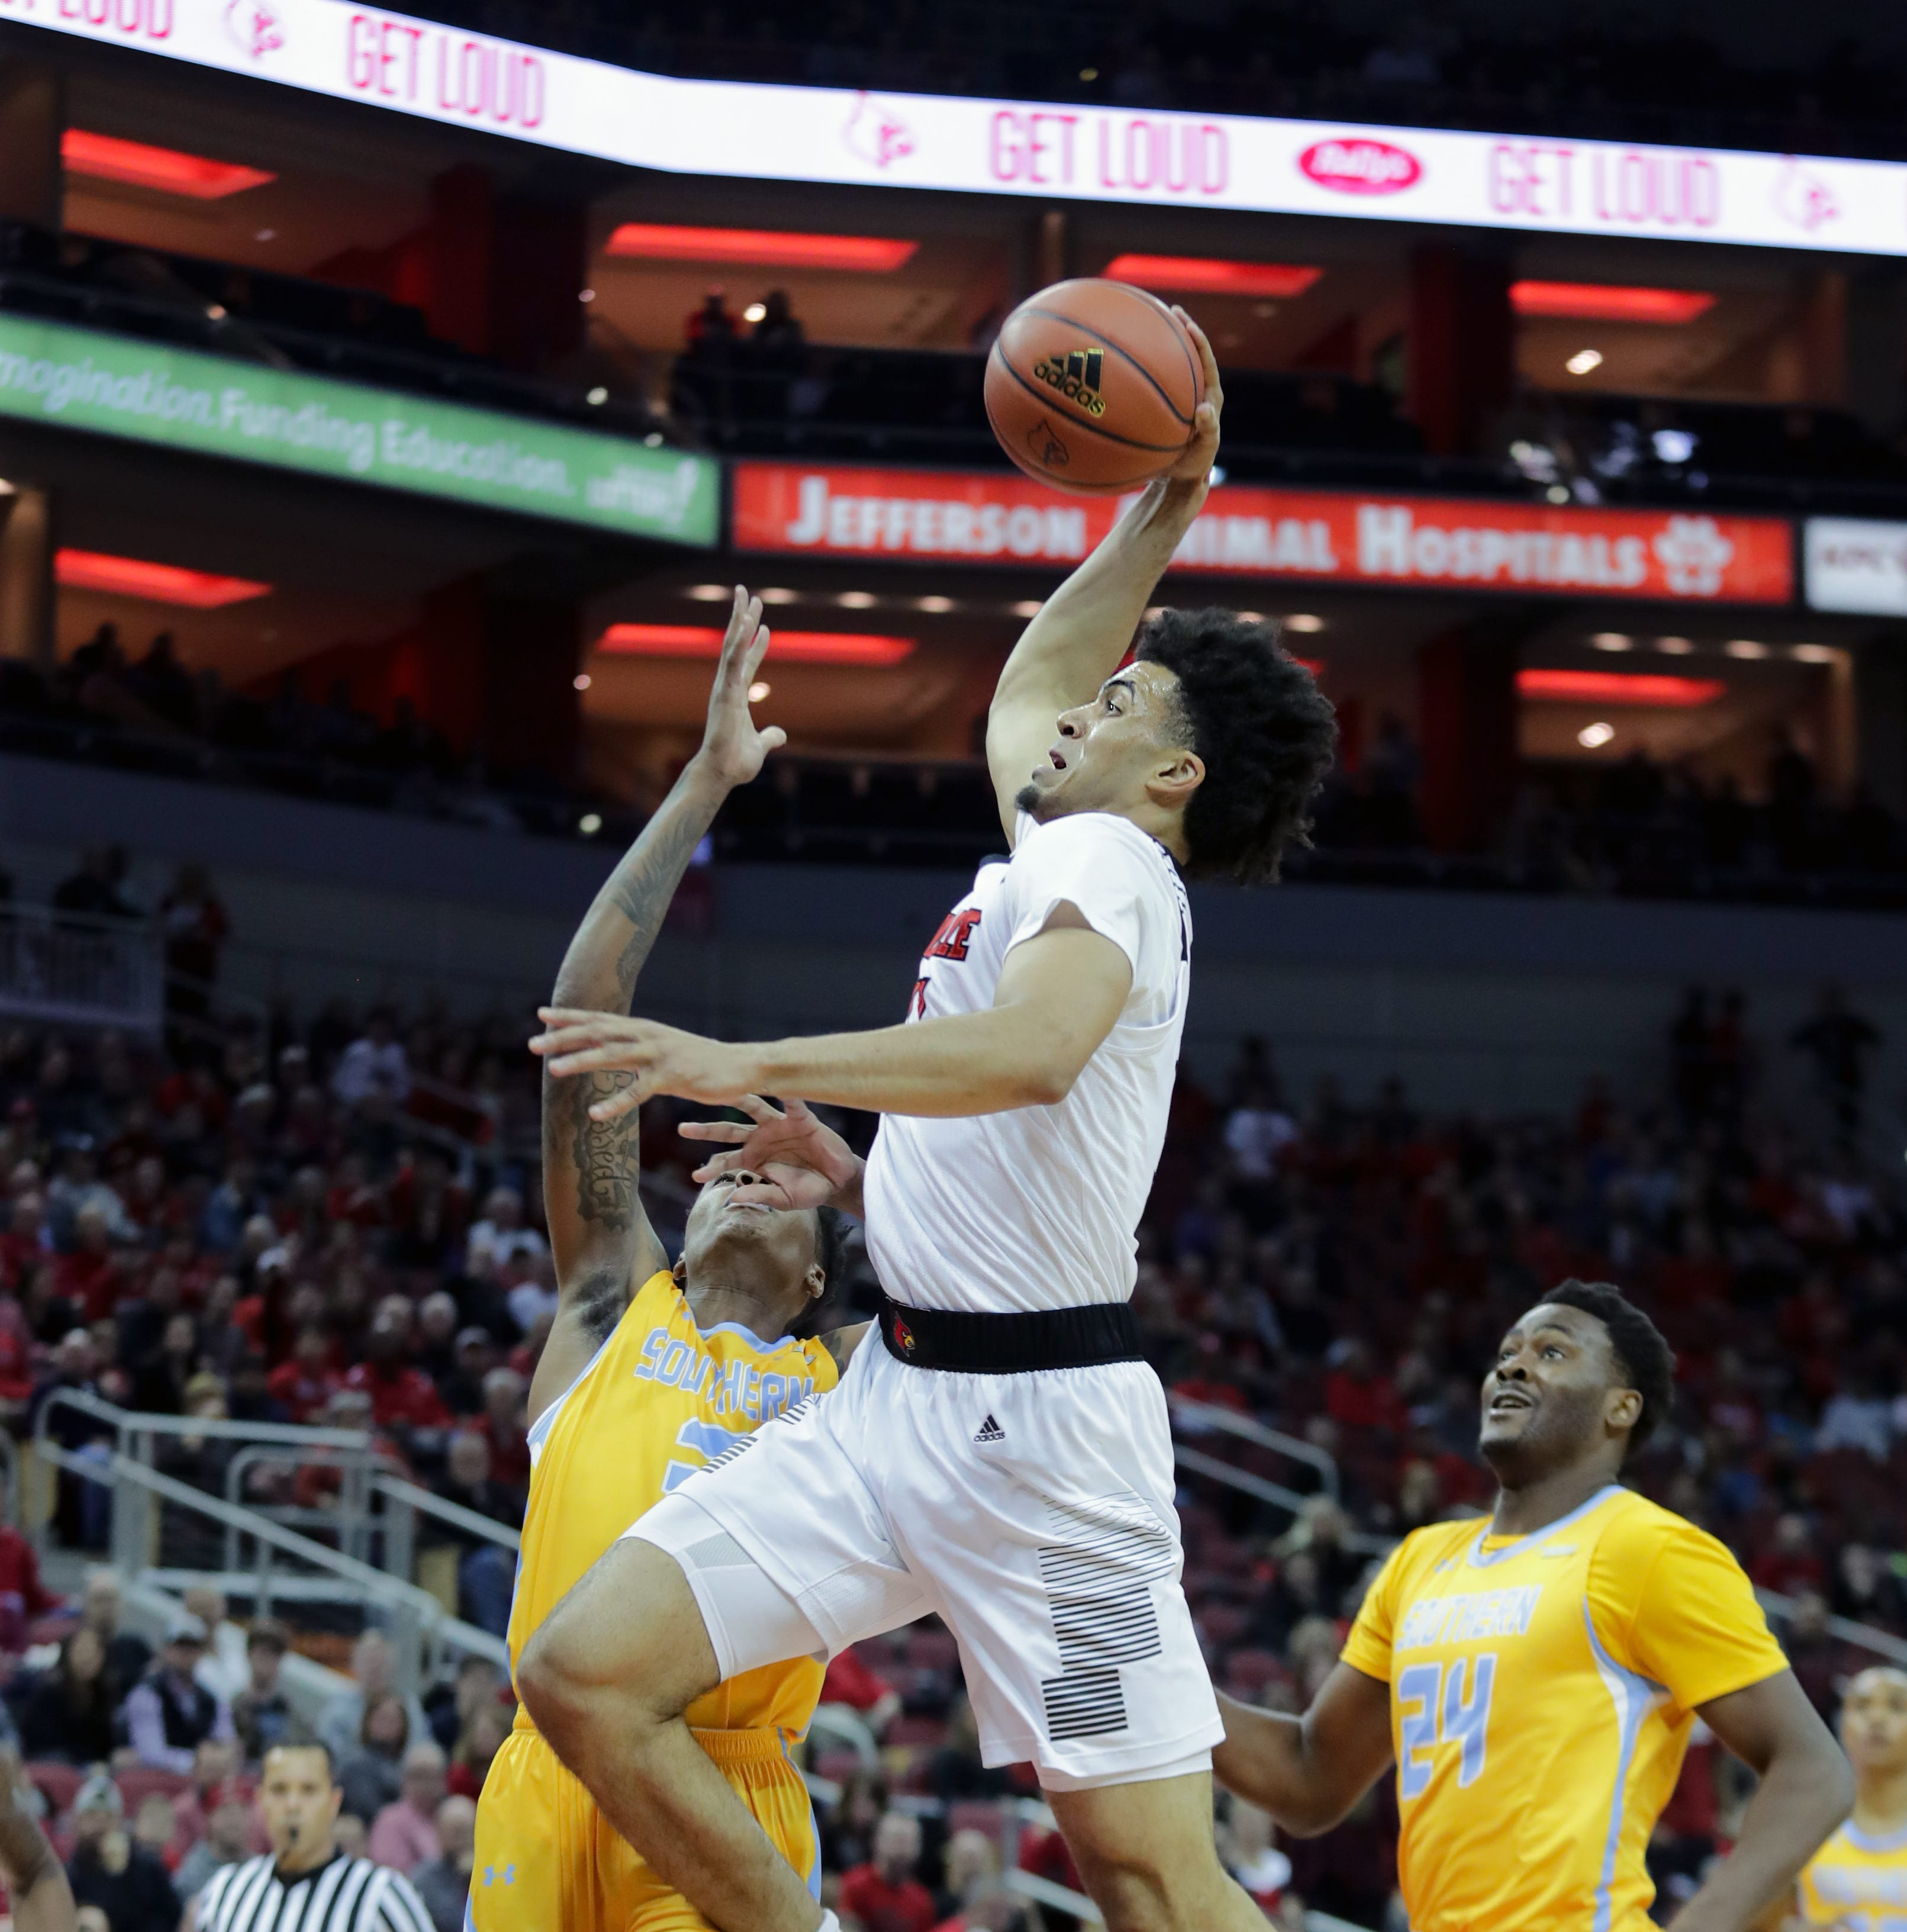 Louisville basketball vs. Vermont: How to watch, listen and stream